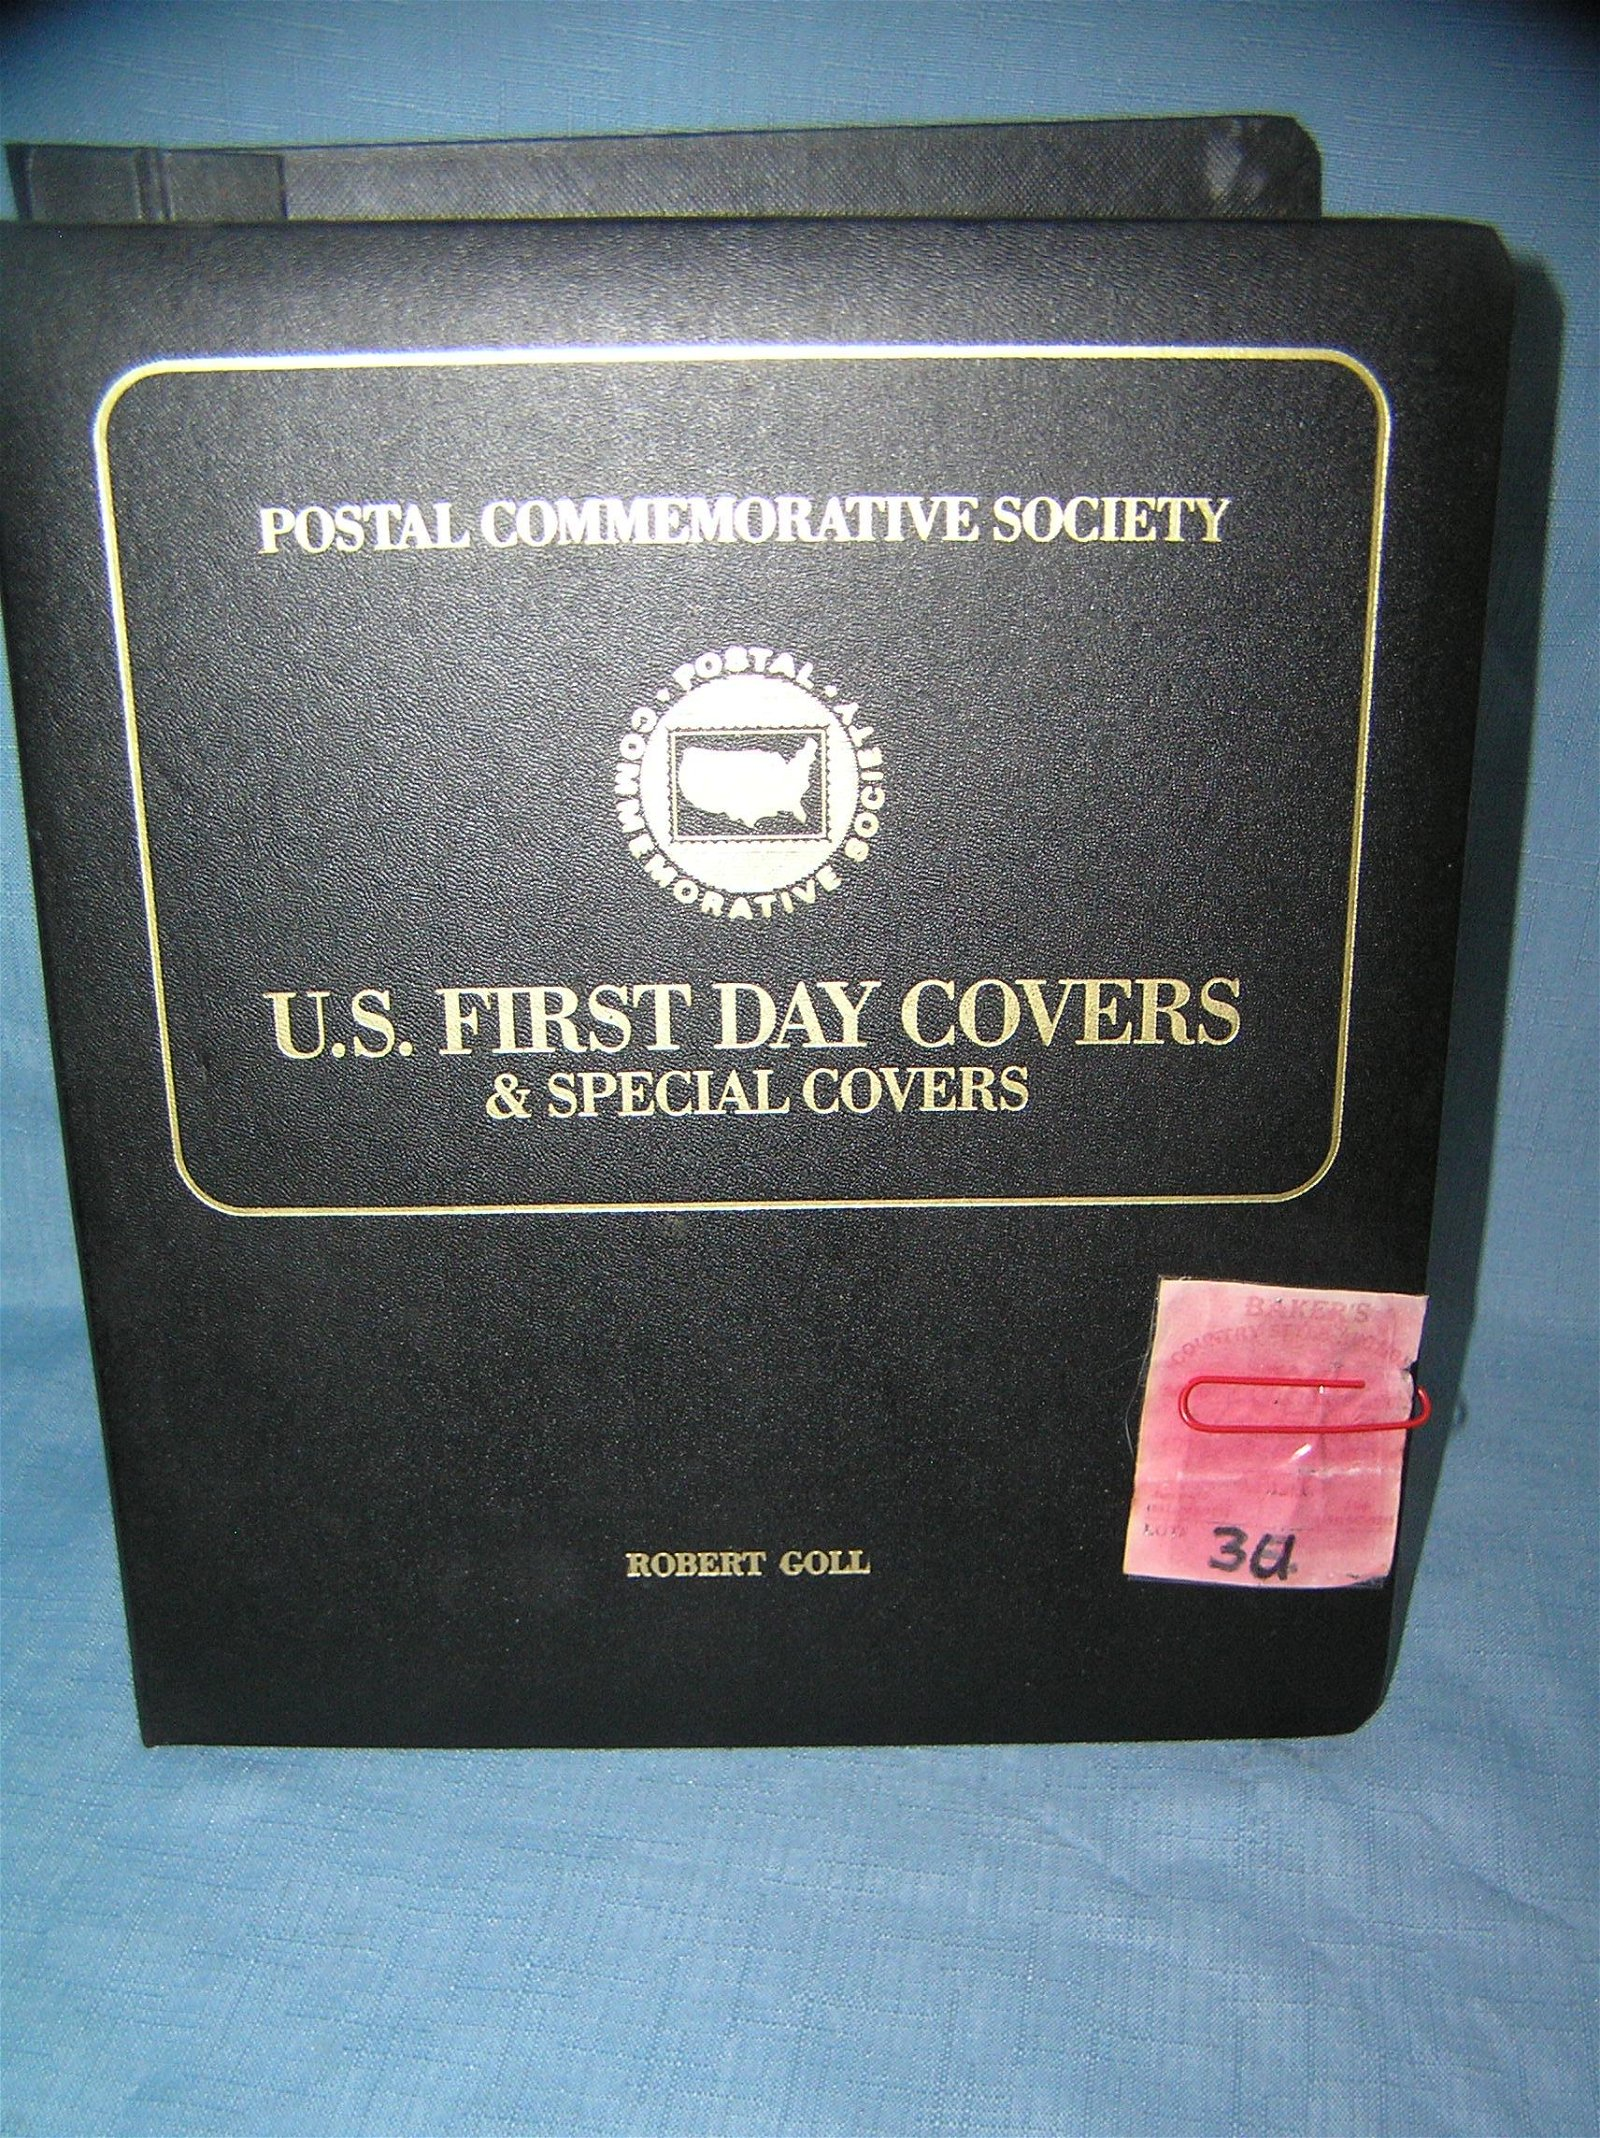 US first day covers and special covers